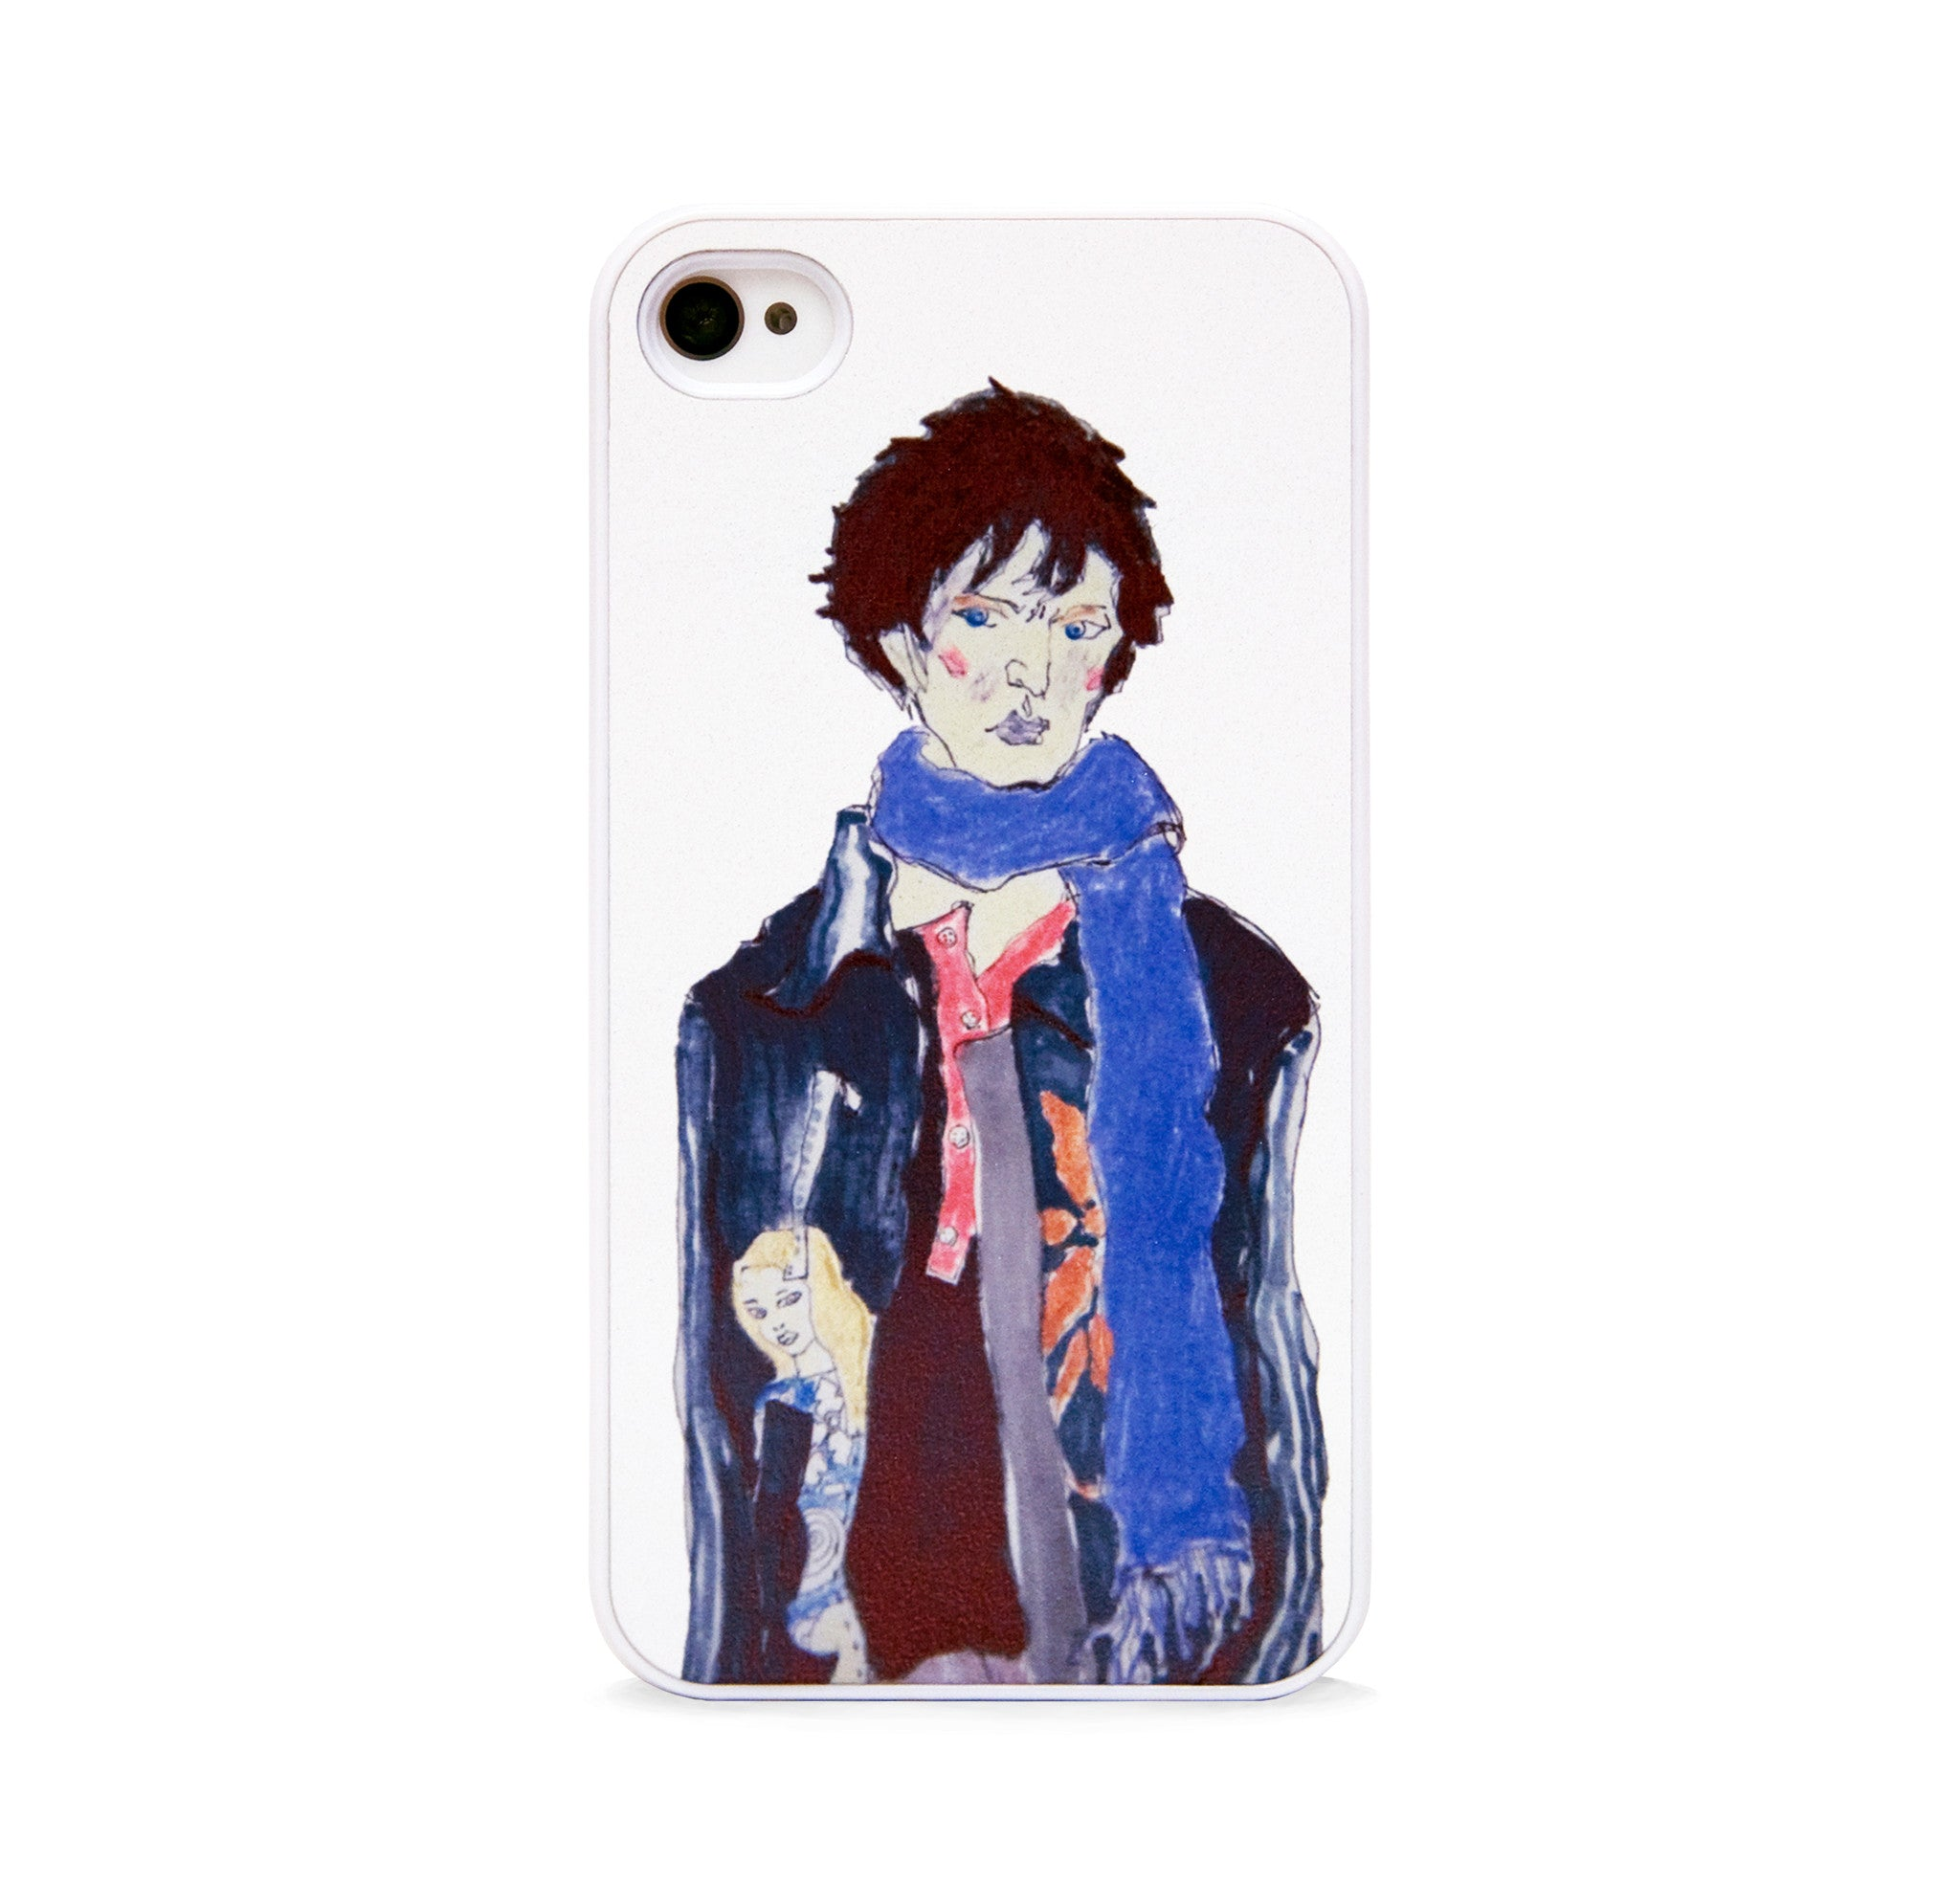 ILLUST MAN FOR IPHONE 4/4S